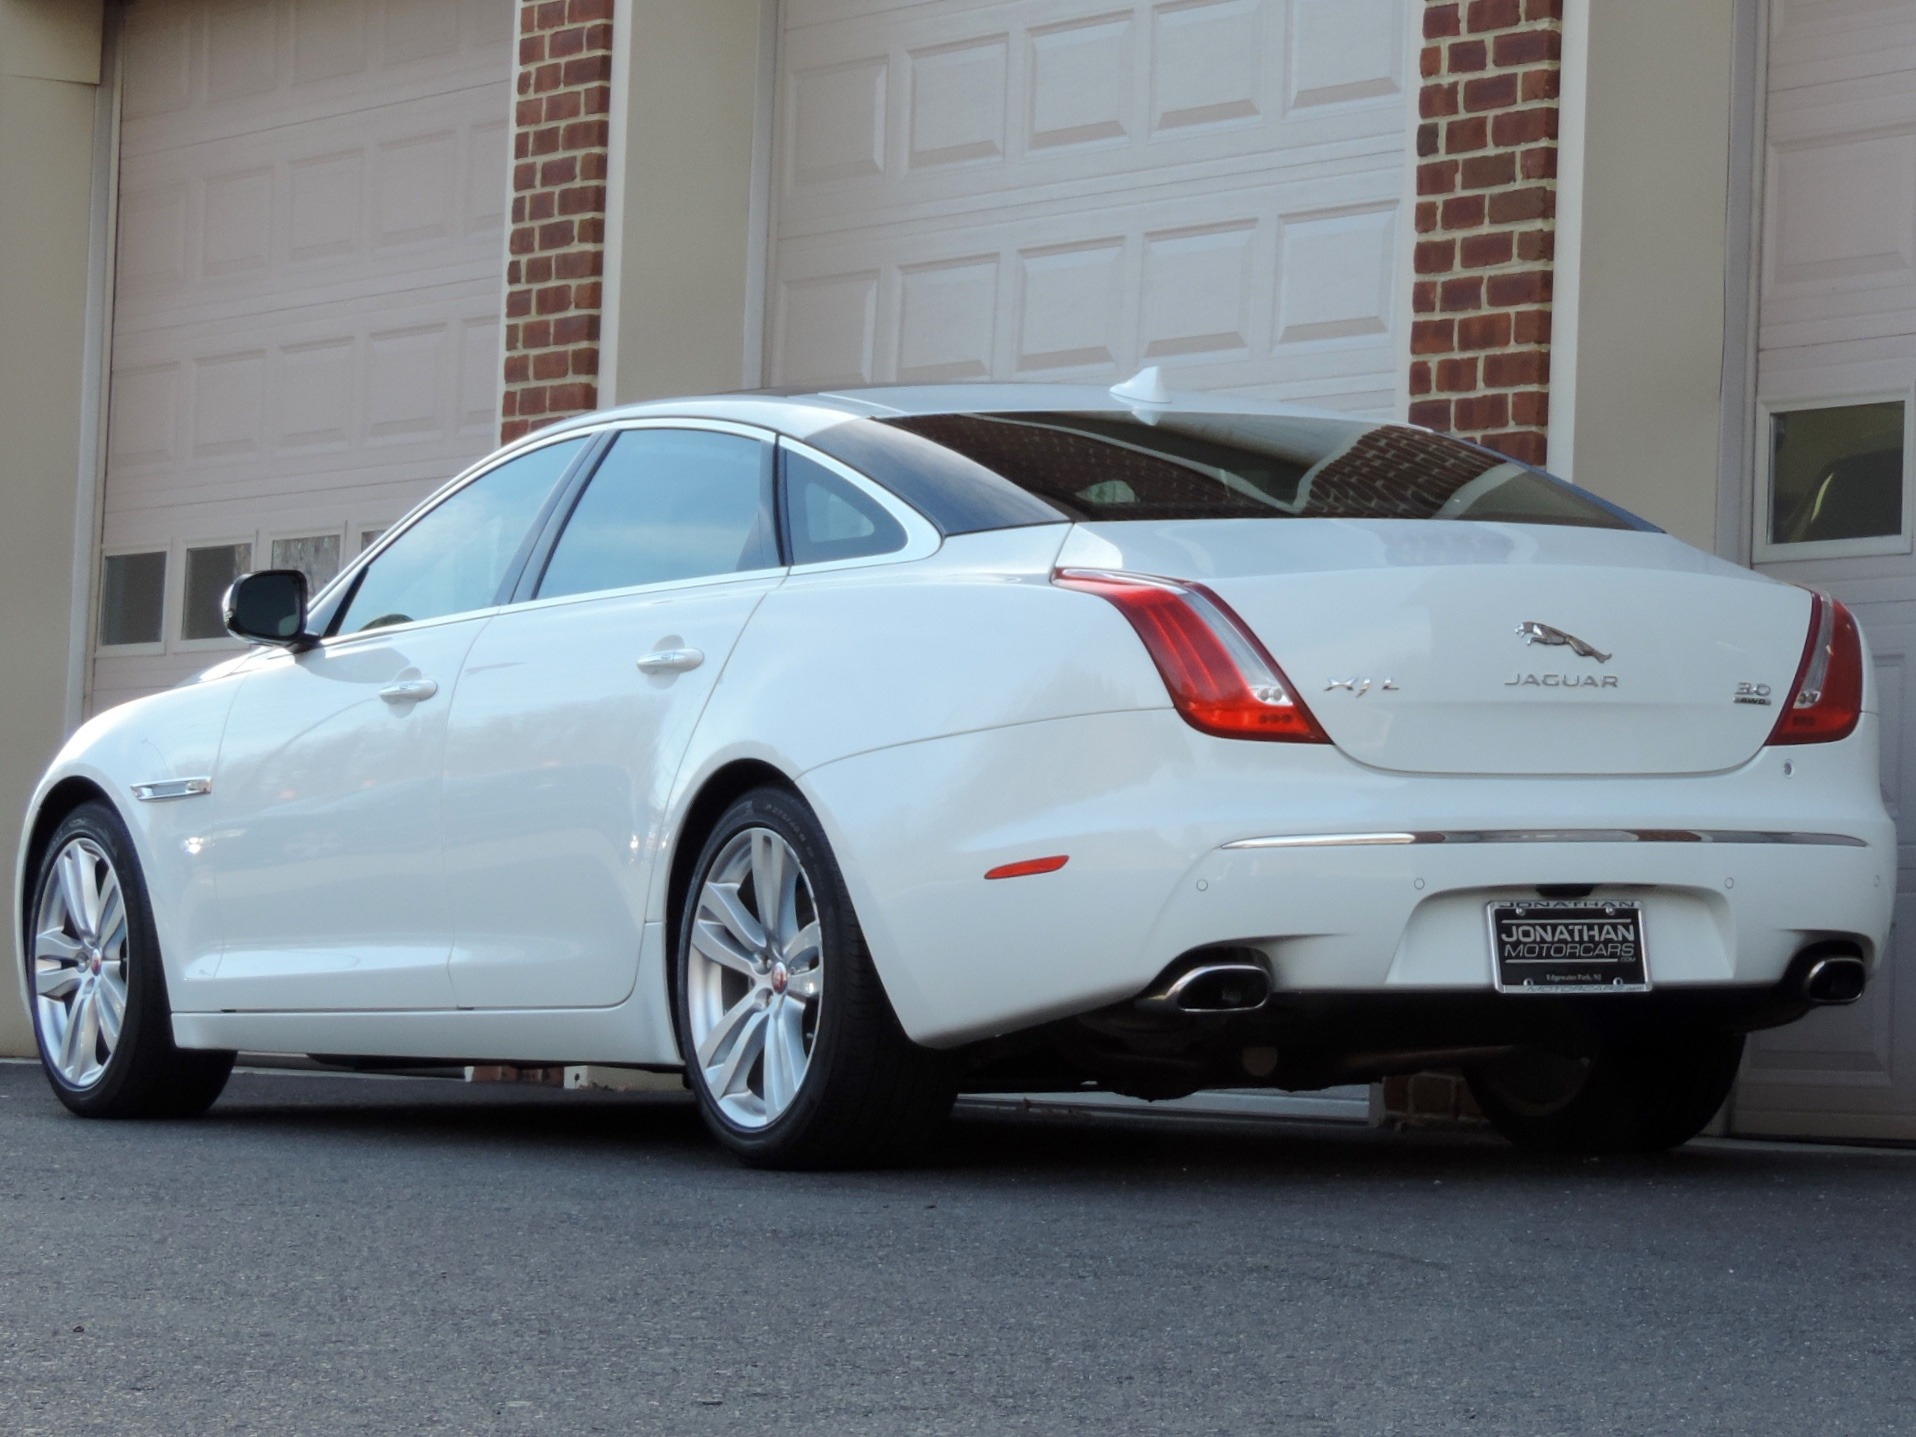 wallpaper htm angle rear of xjr jaguar image picture xjl resolution